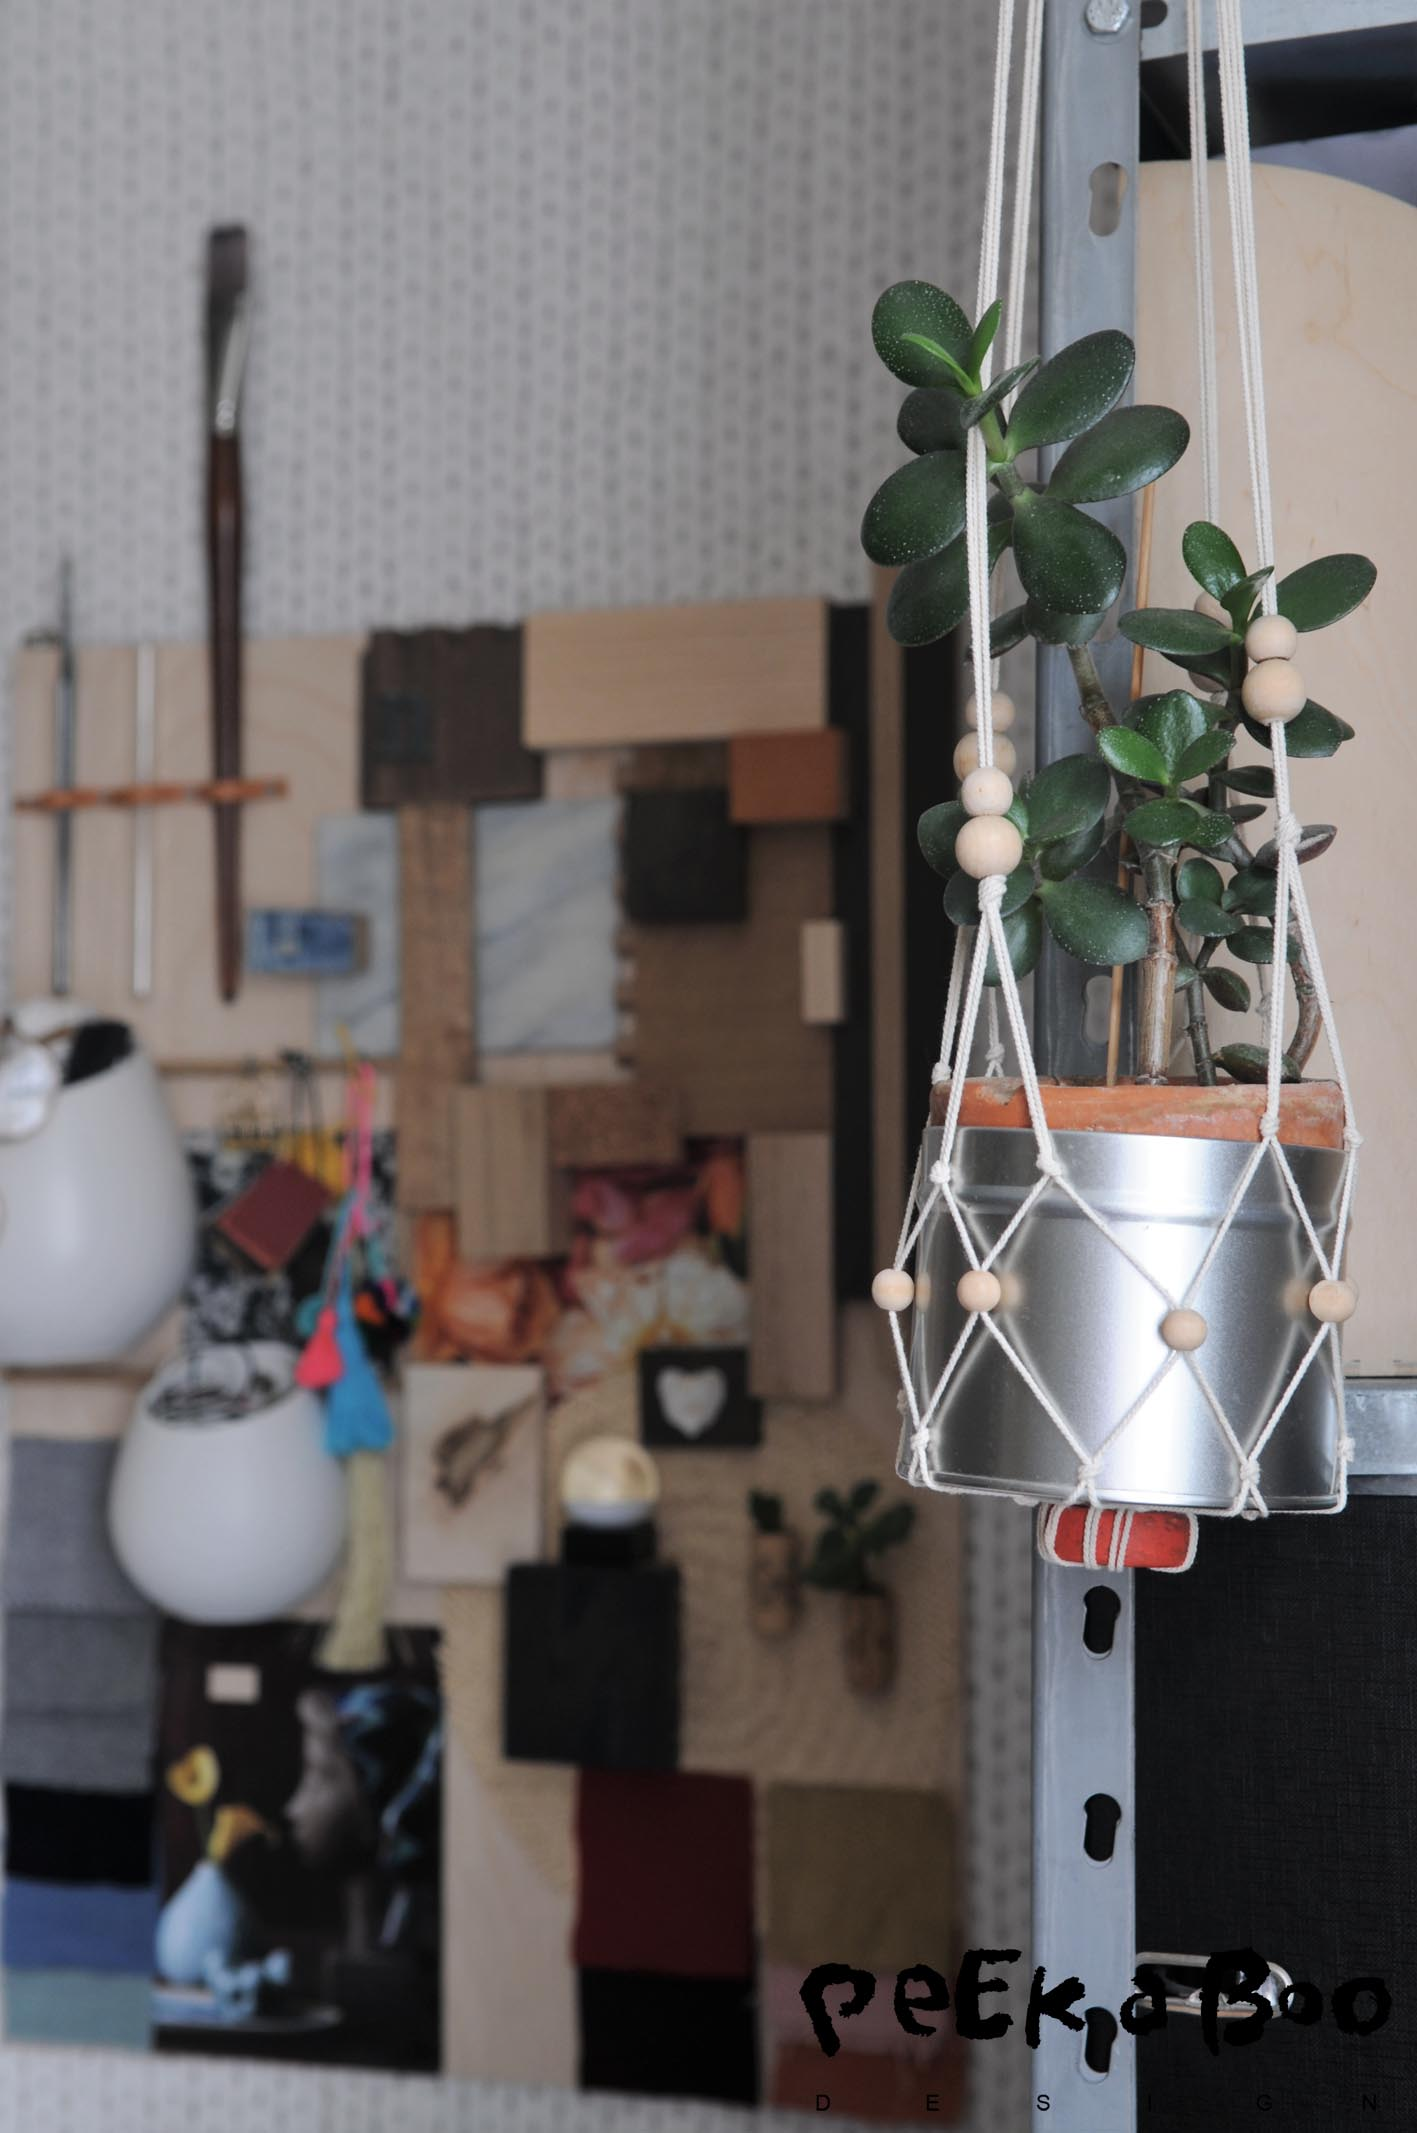 There is always space for a hanging plant.